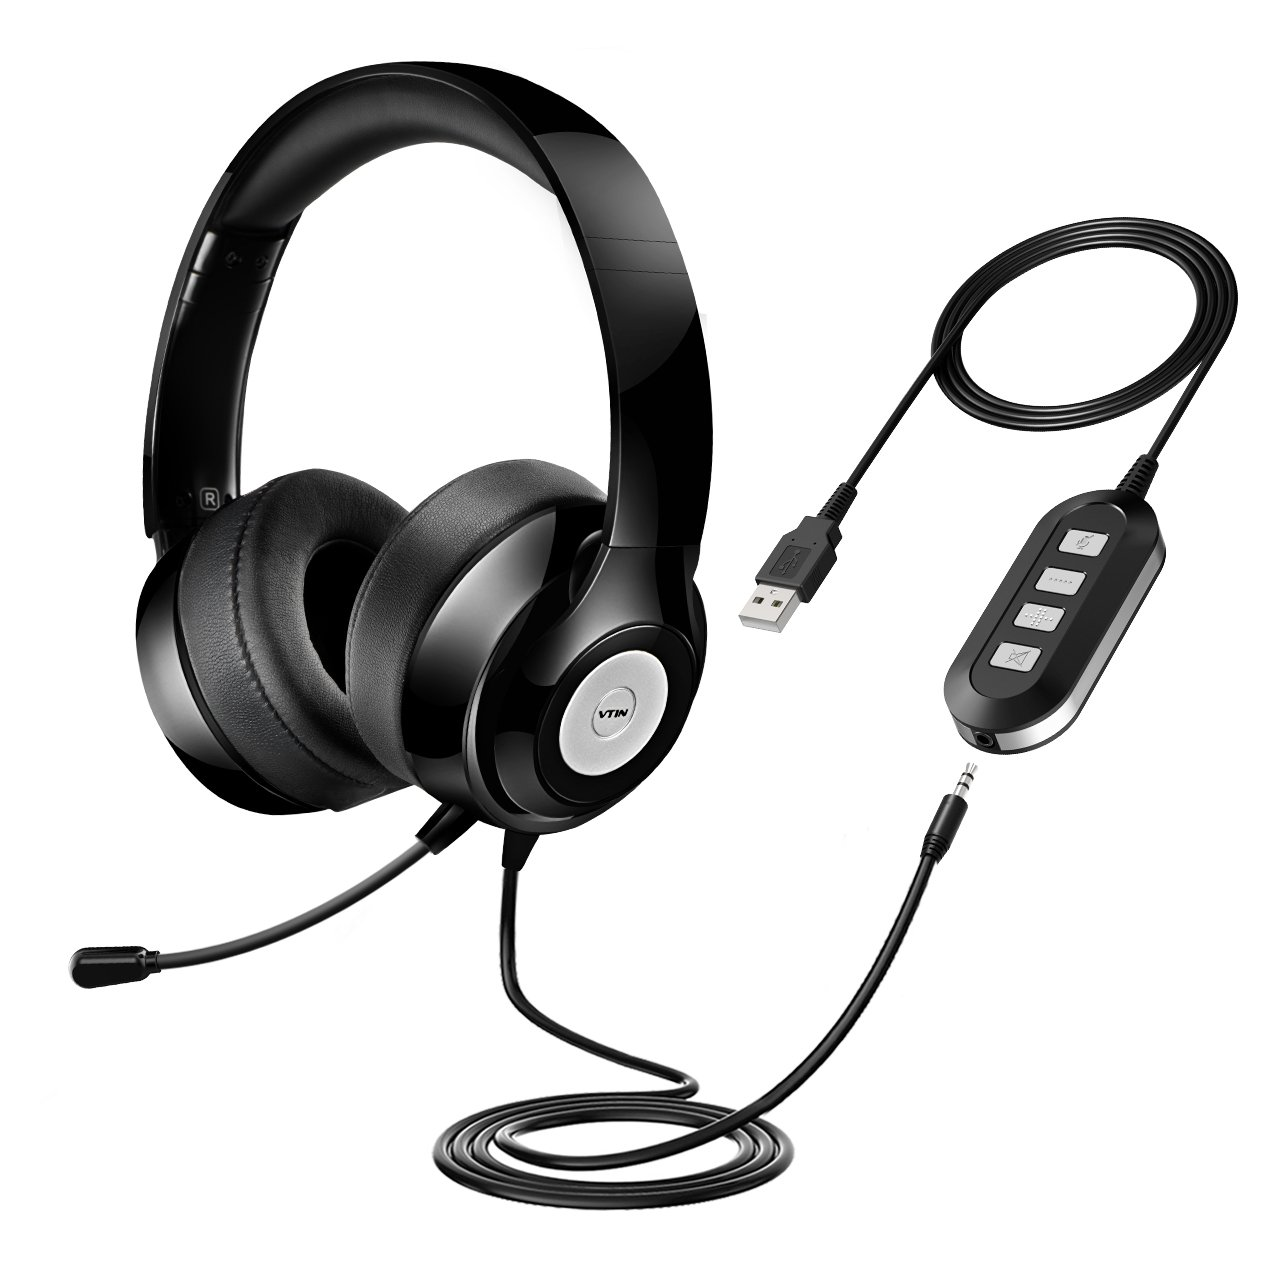 galleon vtin headset with microphone usb headset computer headphone headset noise. Black Bedroom Furniture Sets. Home Design Ideas